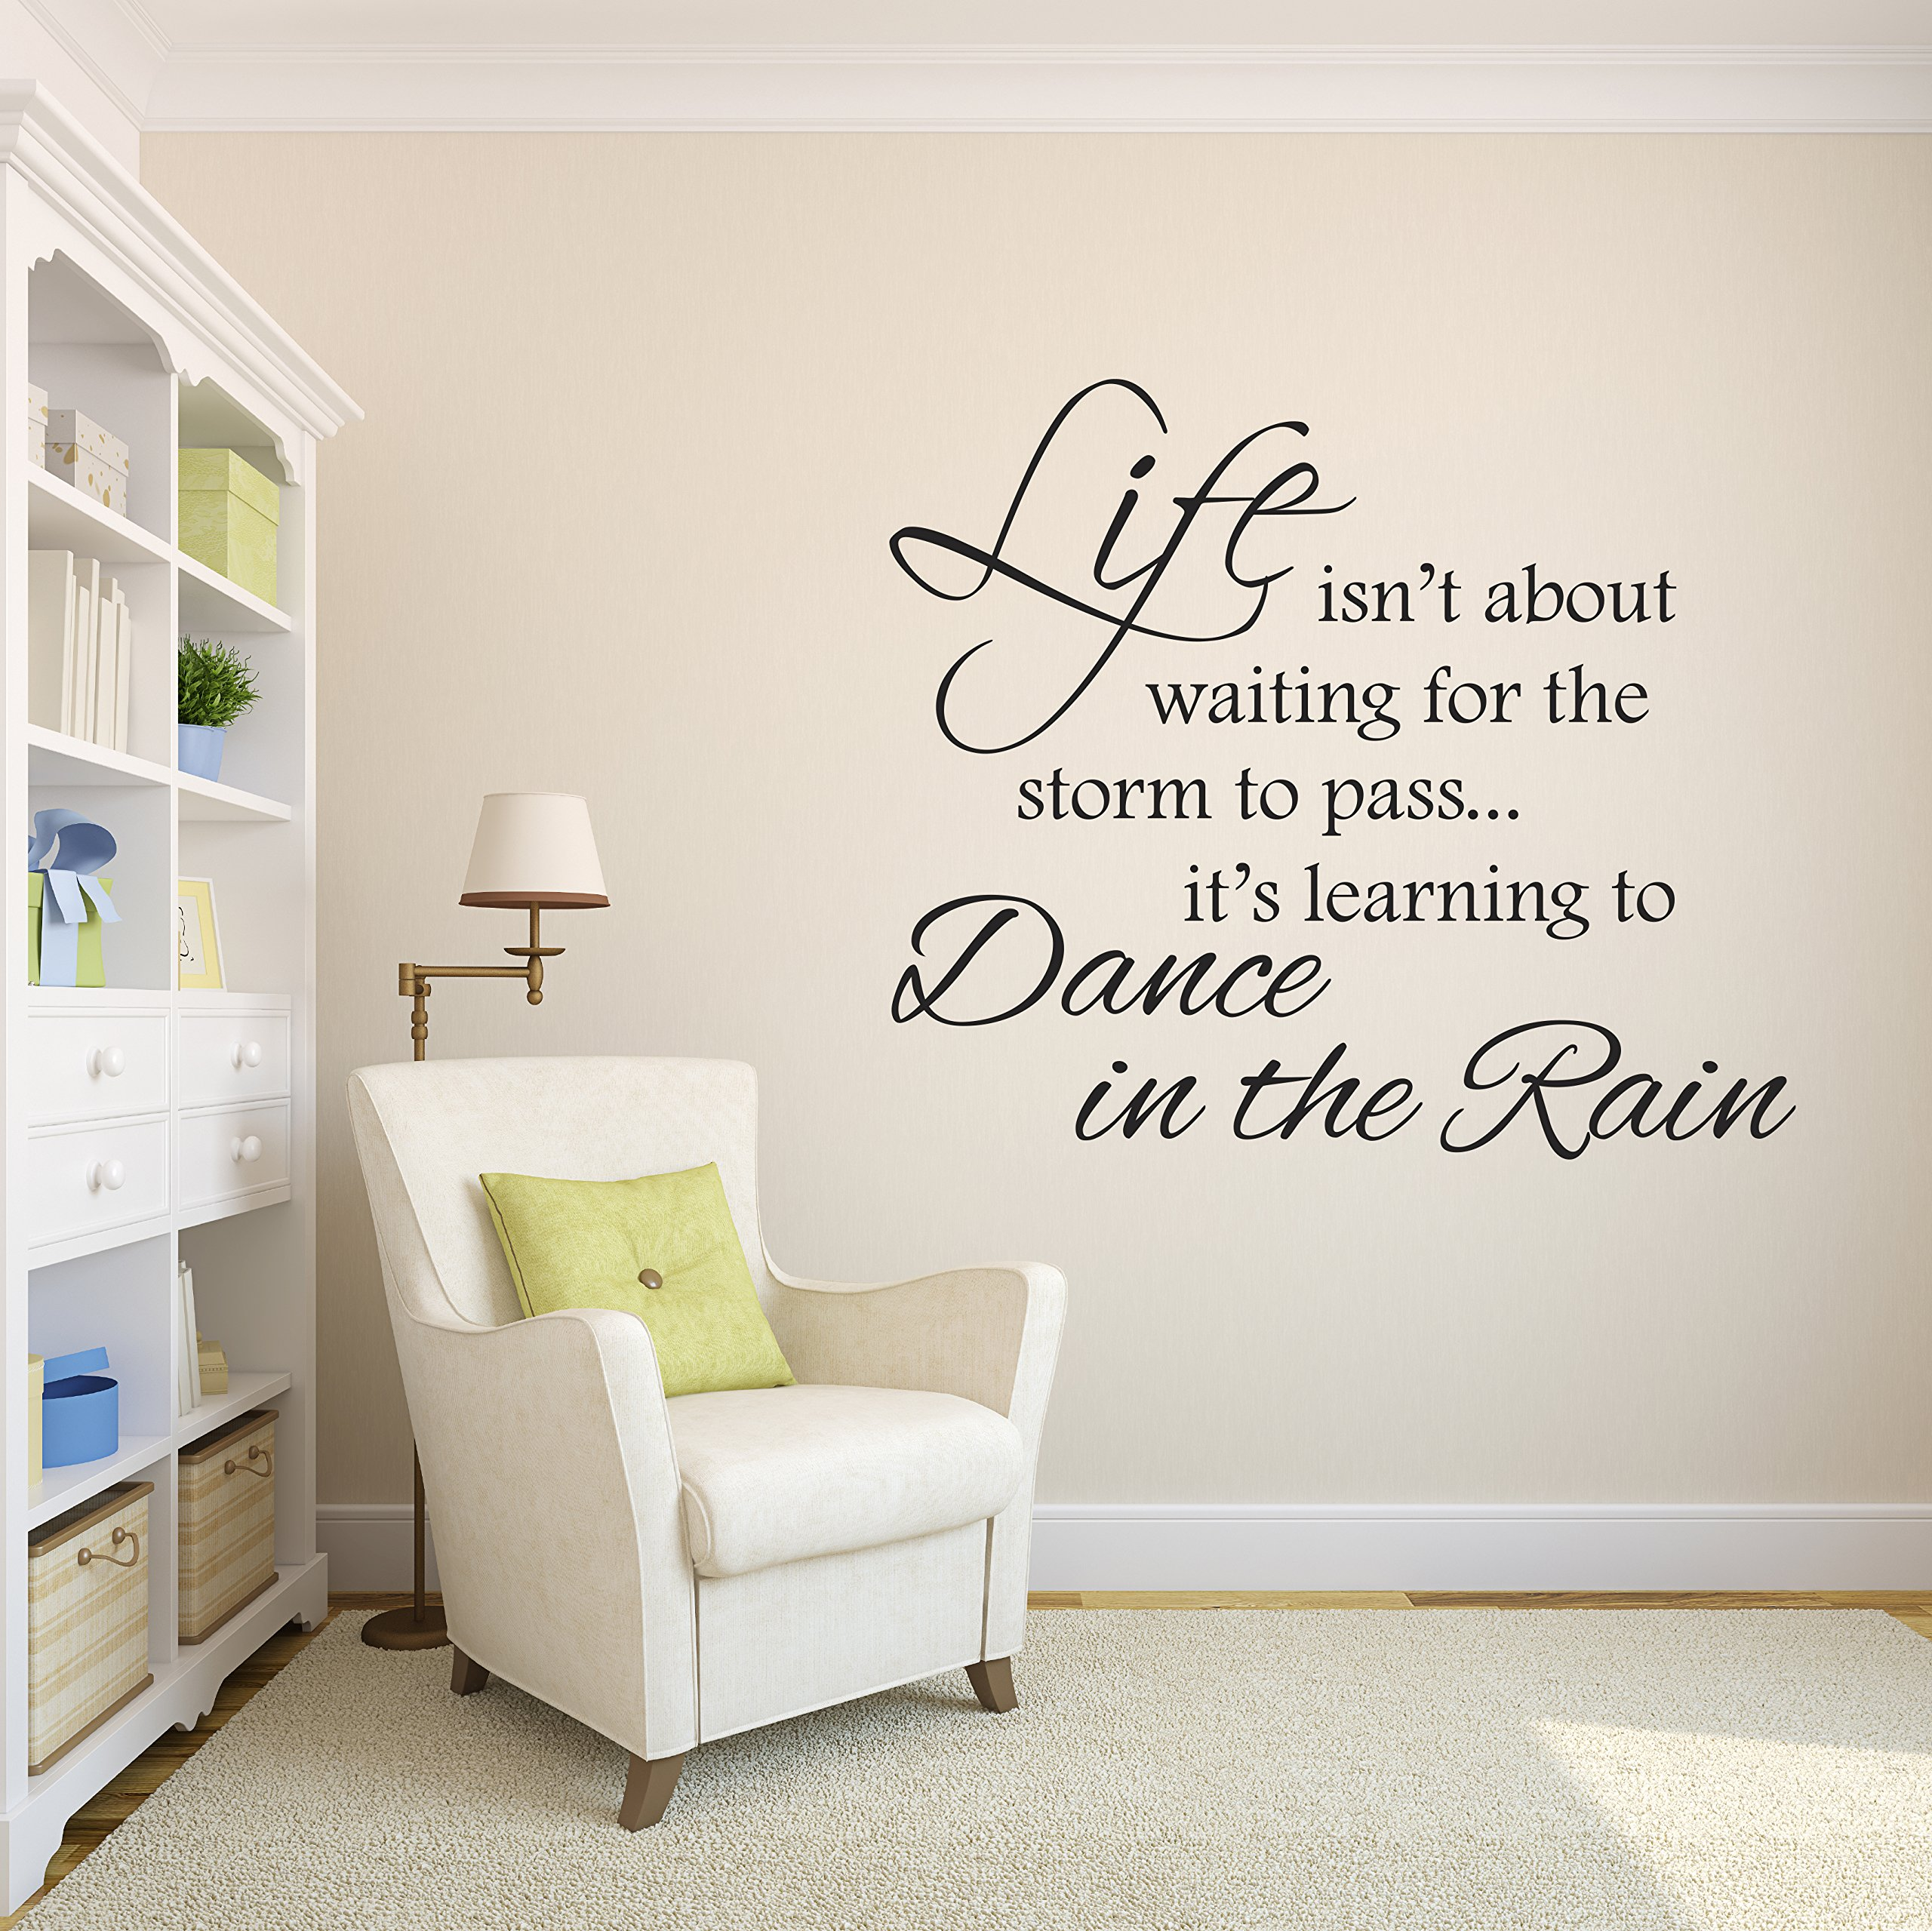 Life Isnt About Waiting for the Storm To Pass Its Learning To Dance In The Rain Vinyl Wall Decal Inspirational Quotes by Decalzone Inc